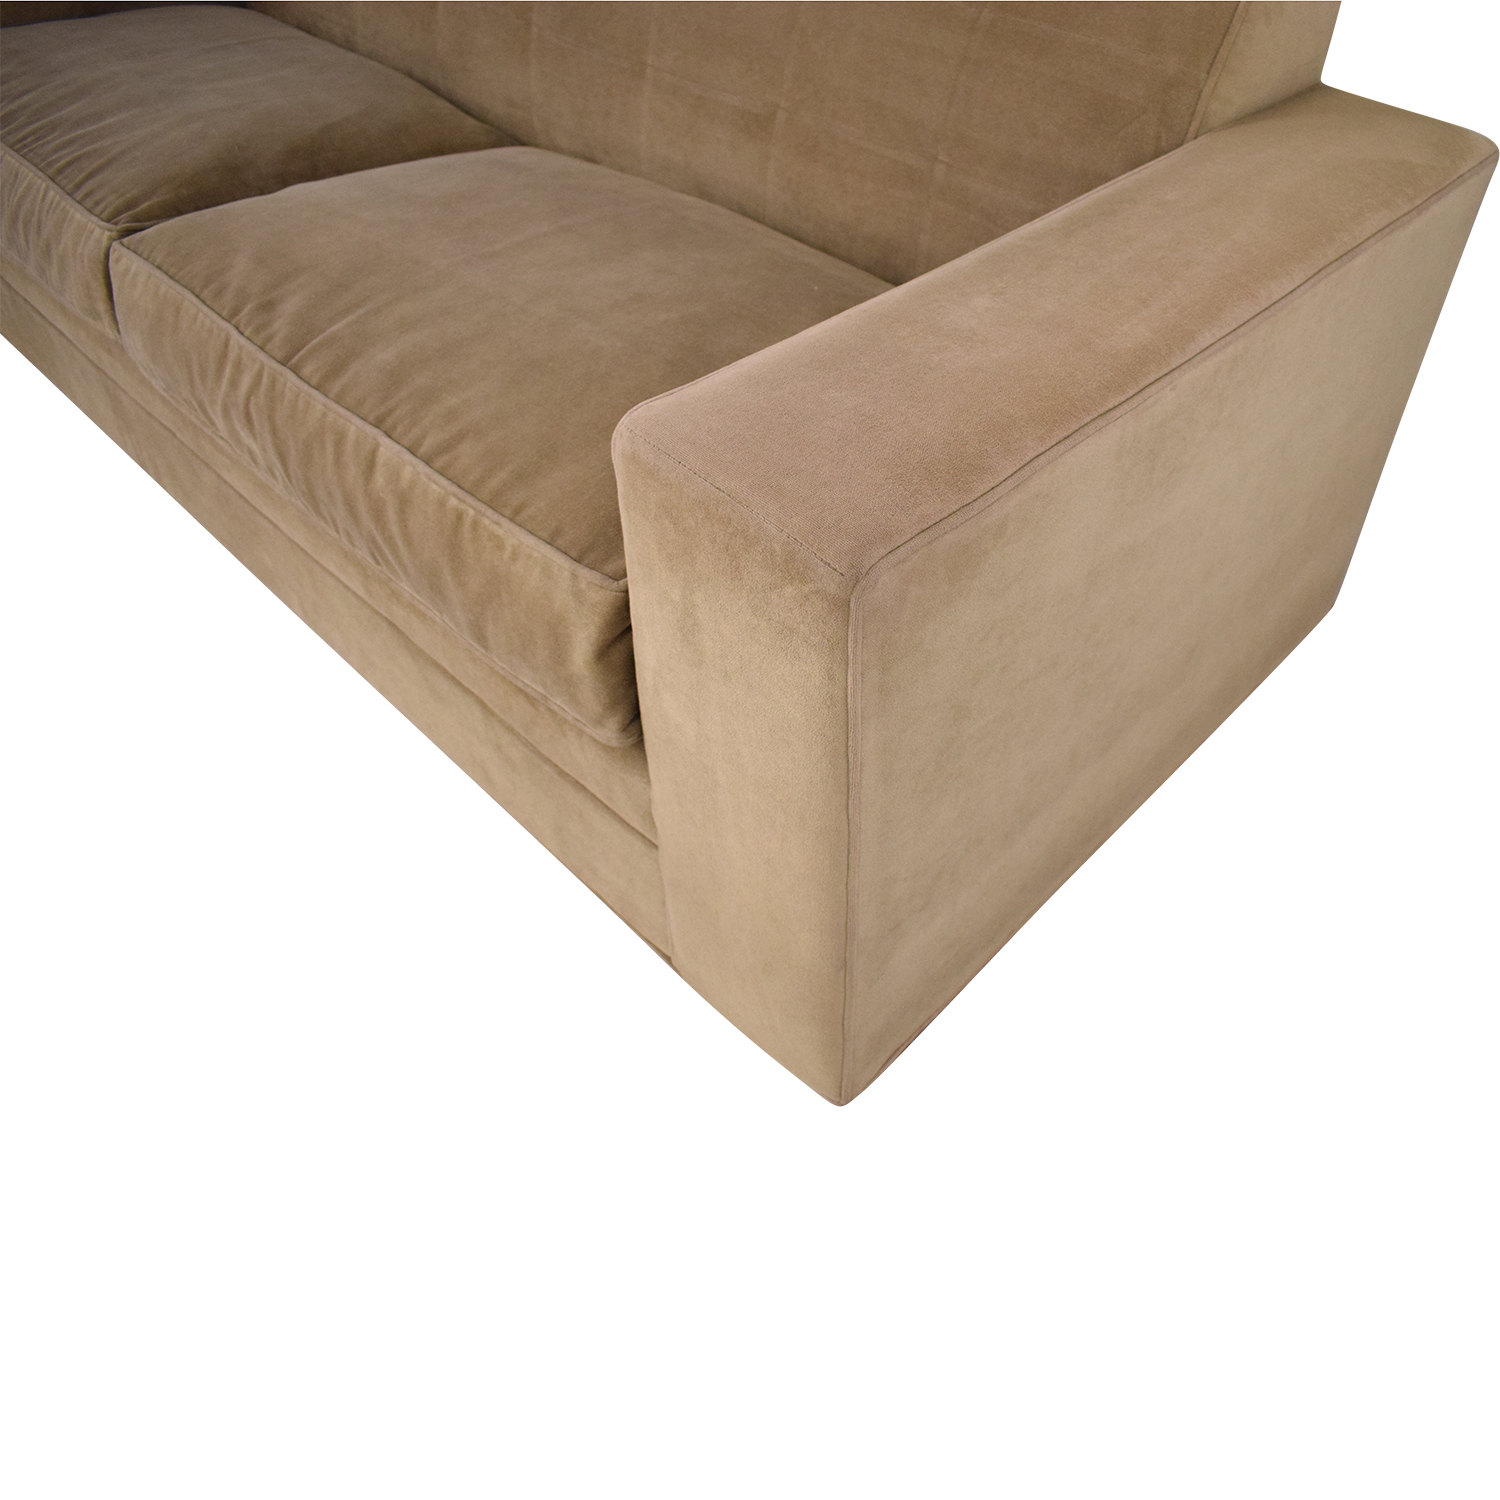 shop Mitchell Gold + Bob Williams Mitchell Gold + Bob Williams Two Cushion Sofa online